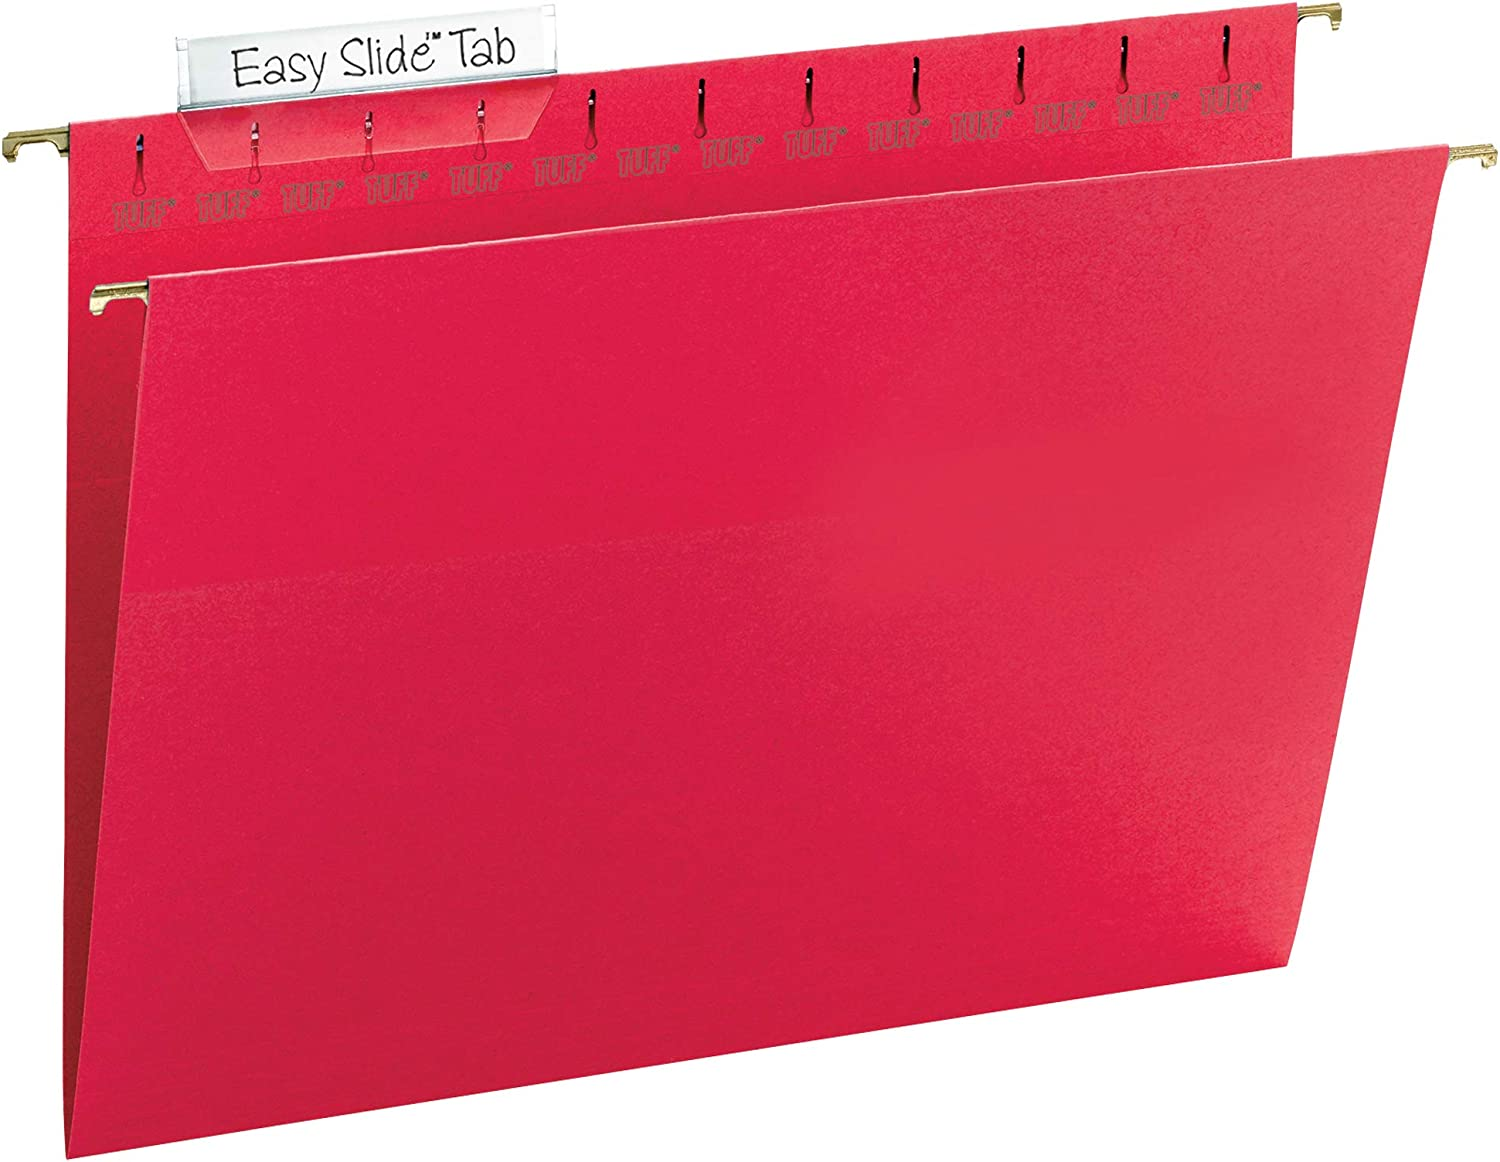 Smead TUFF Hanging File Folder with Easy Slide Tab, 1/3-Cut Sliding Tab, Letter Size, Red, 18 per Box (64043, Rod Color May Vary)